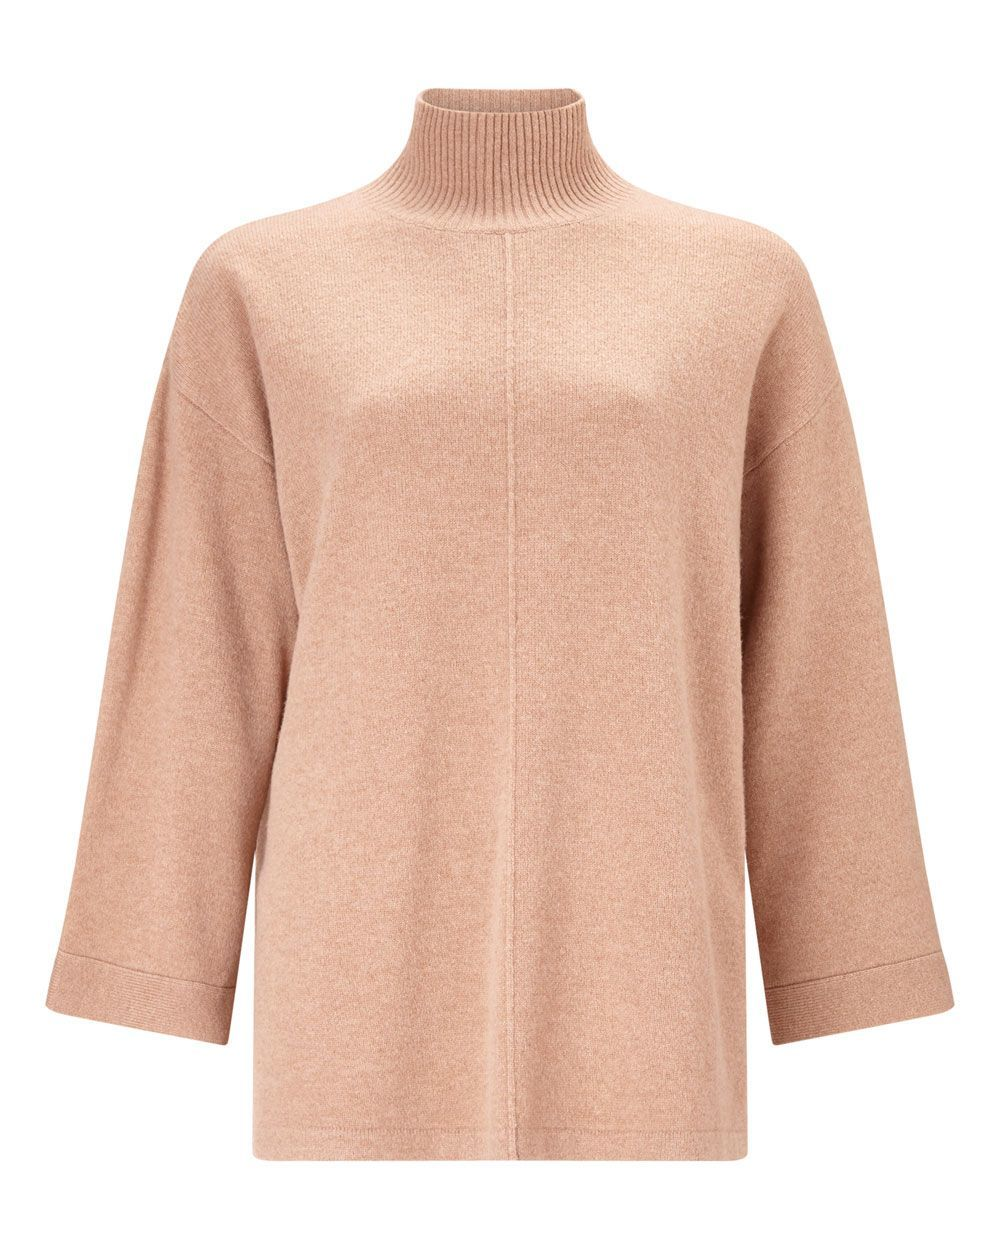 Merino Turtle Neck Jumper, Tan - sleeve style: dolman/batwing; pattern: plain; neckline: high neck; style: standard; predominant colour: blush; occasions: casual, creative work; length: standard; fibres: wool - 100%; fit: loose; sleeve length: 3/4 length; texture group: knits/crochet; pattern type: knitted - fine stitch; season: a/w 2015